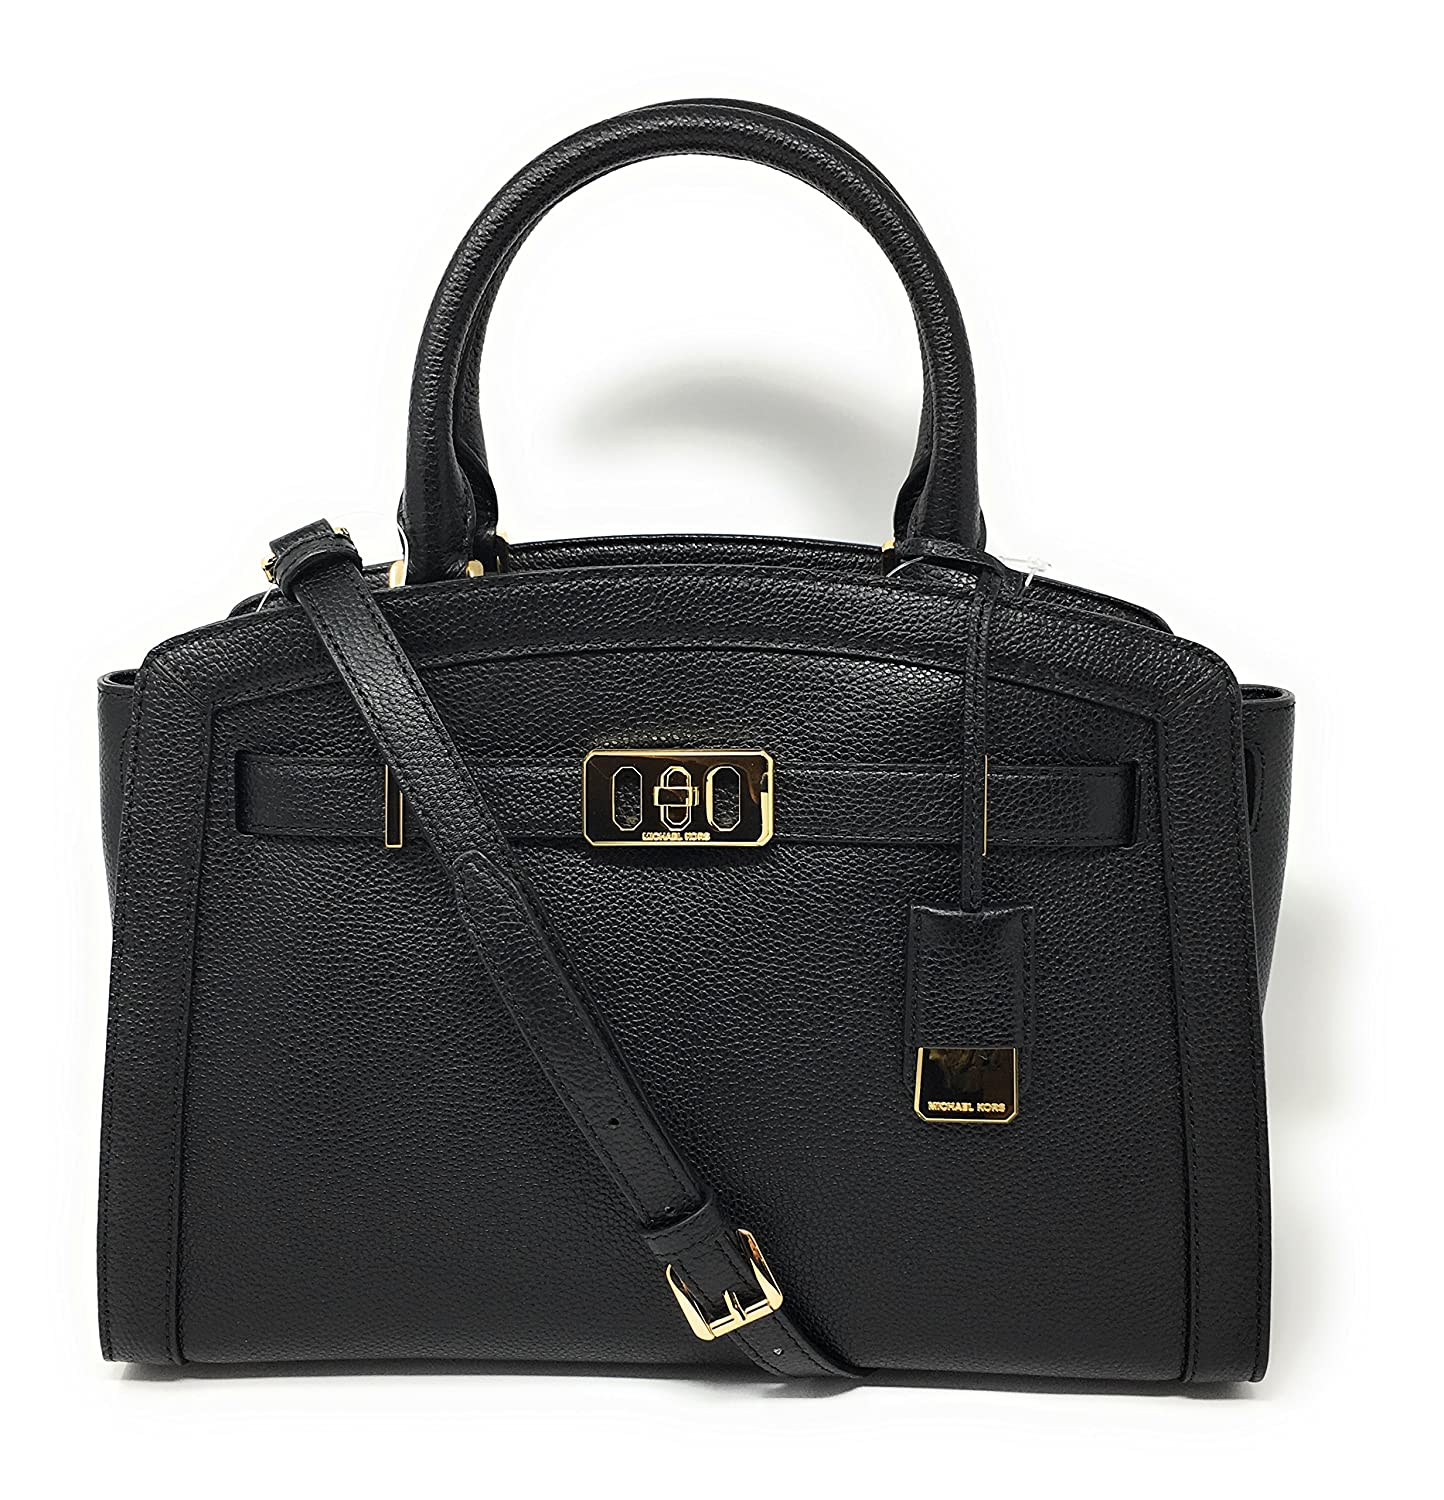 bb47a2a75c9a7f Michael Kors Karson Large Satchel Black: Handbags: Amazon.com